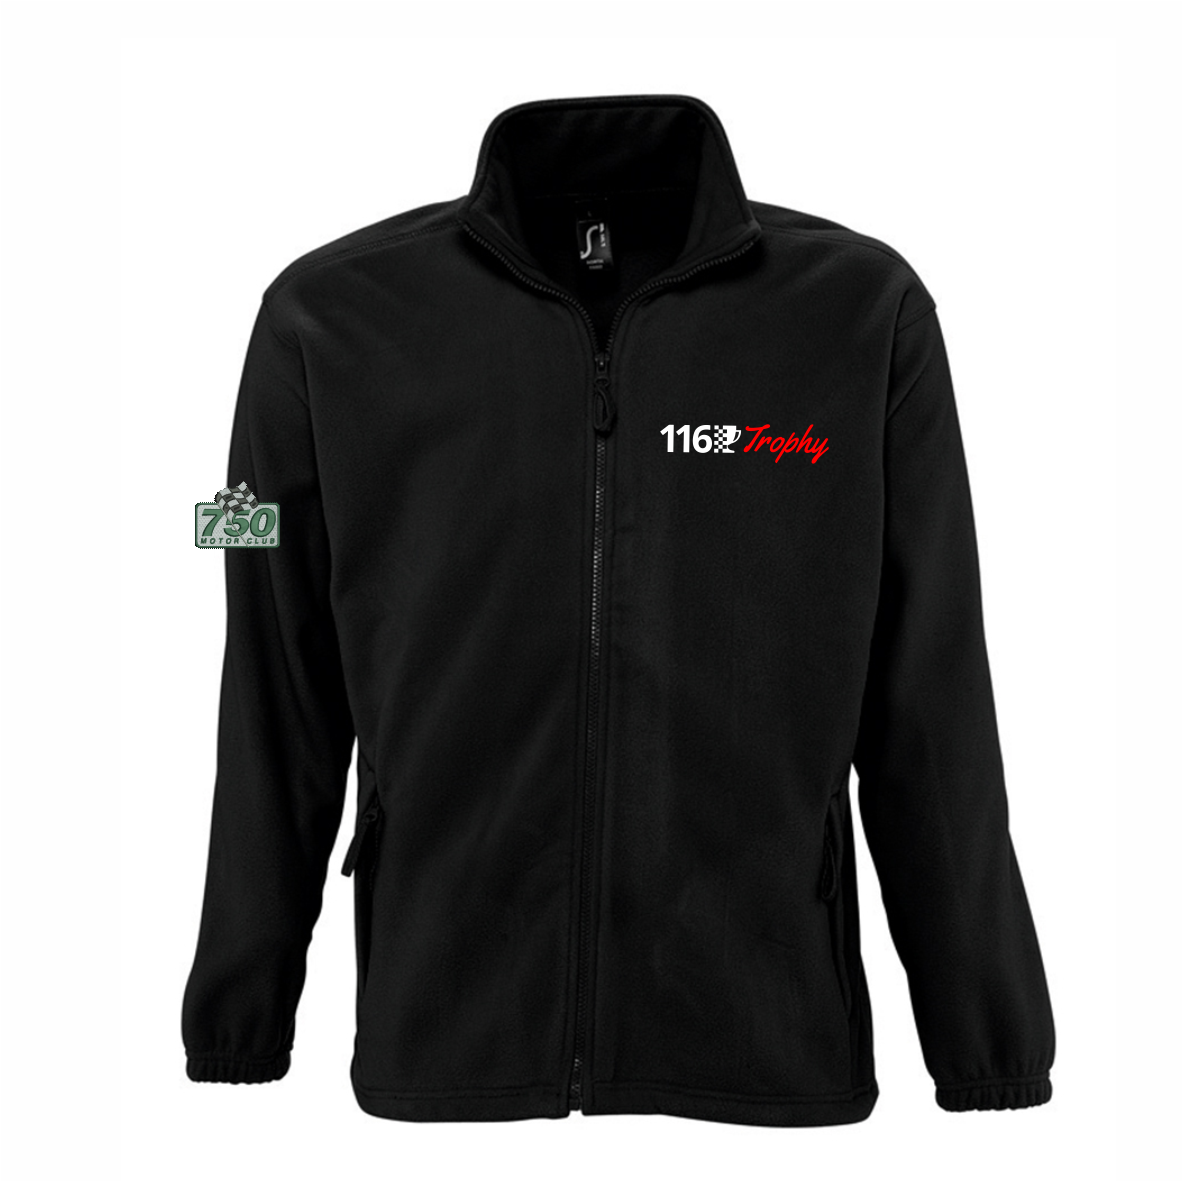 116 Trophy Ladies Fleece